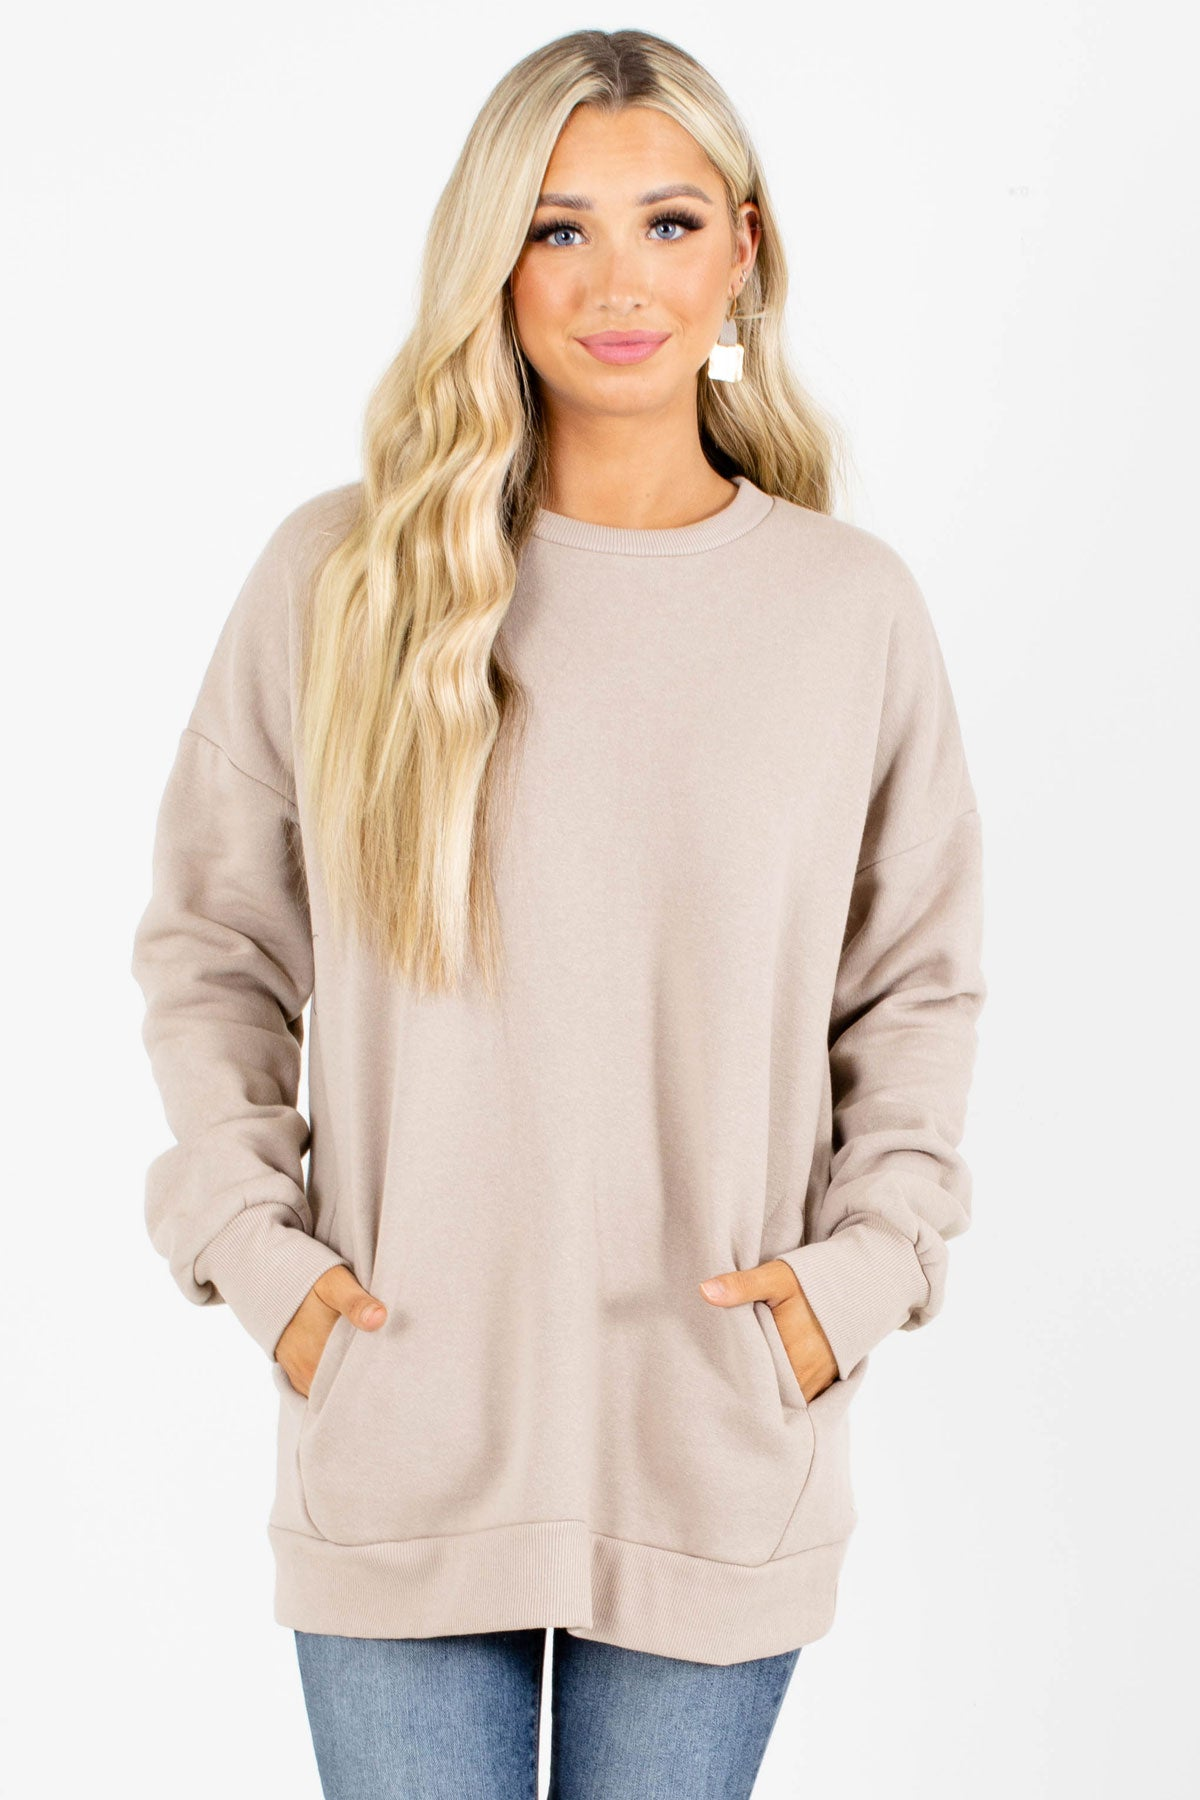 Beige Round Neckline Boutique Pullovers for Women